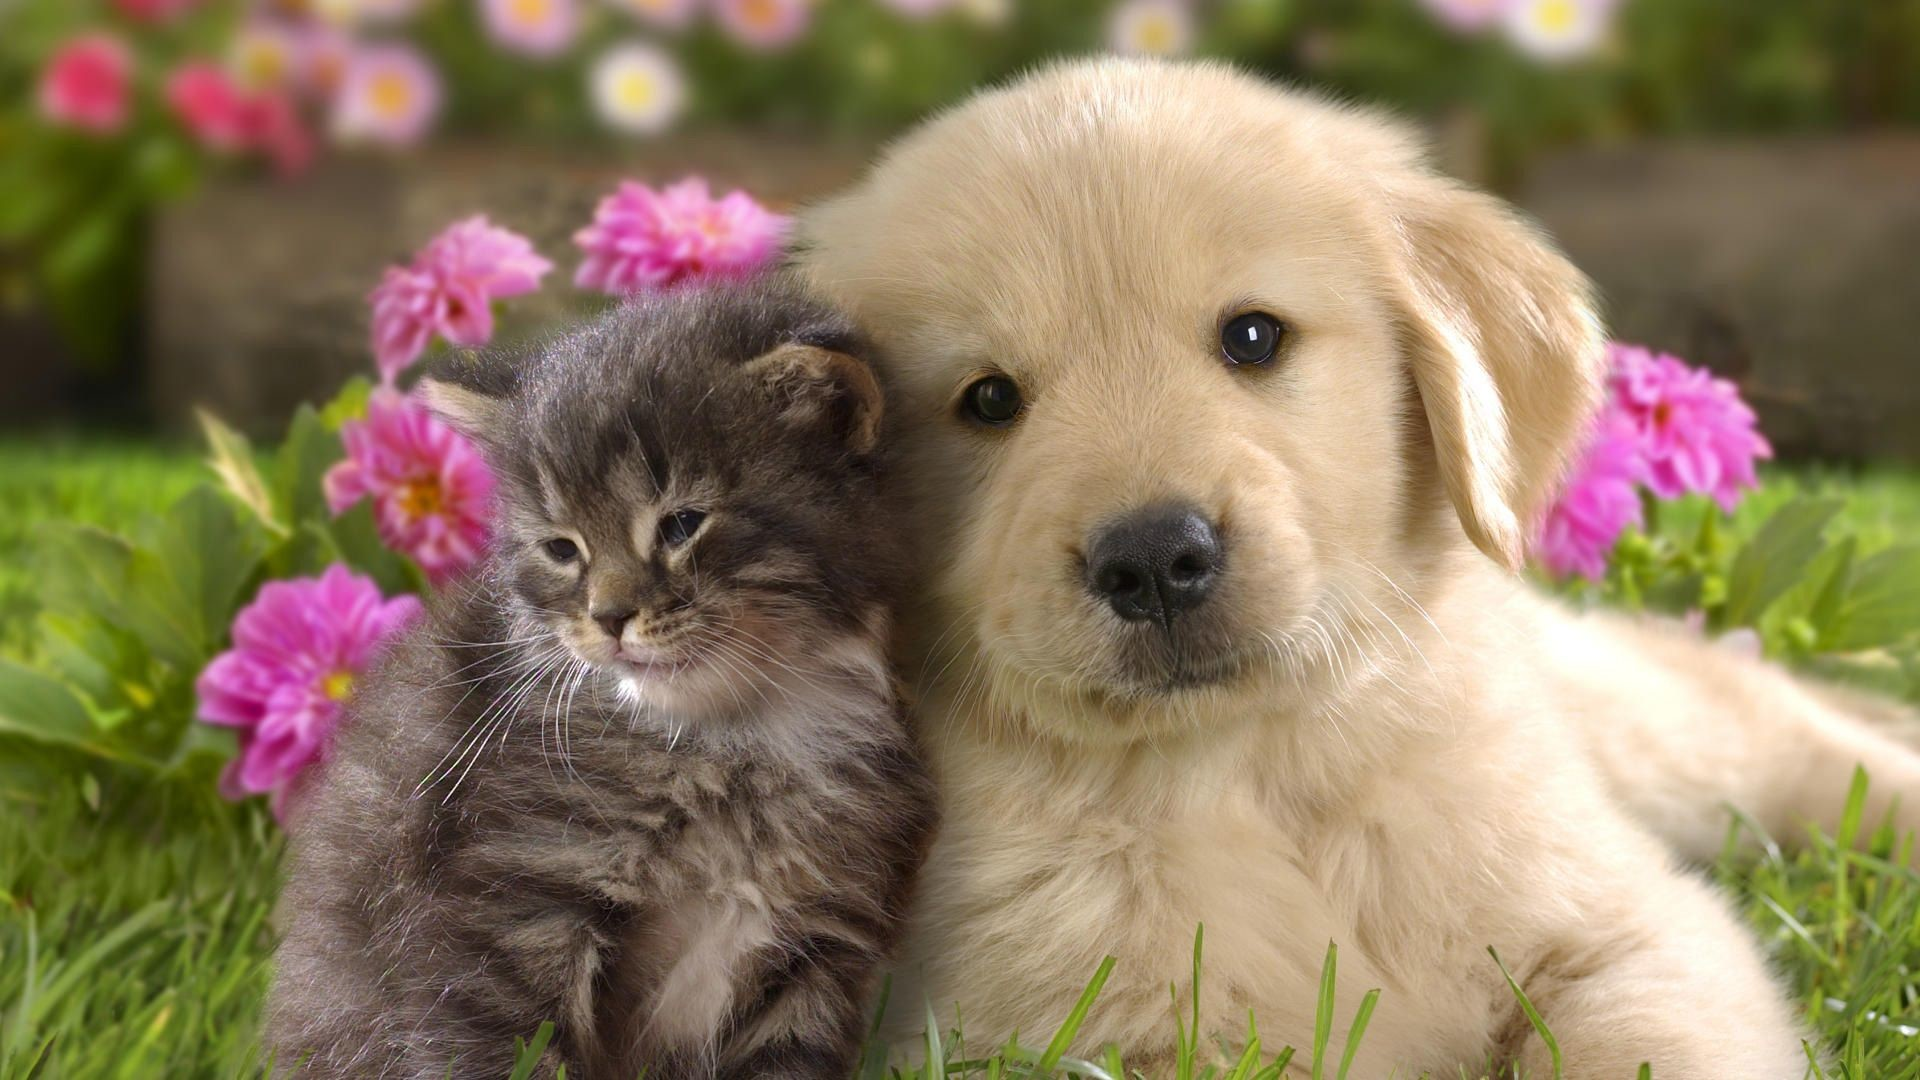 1920x1080 Dog And Cat Wallpaper Mobile